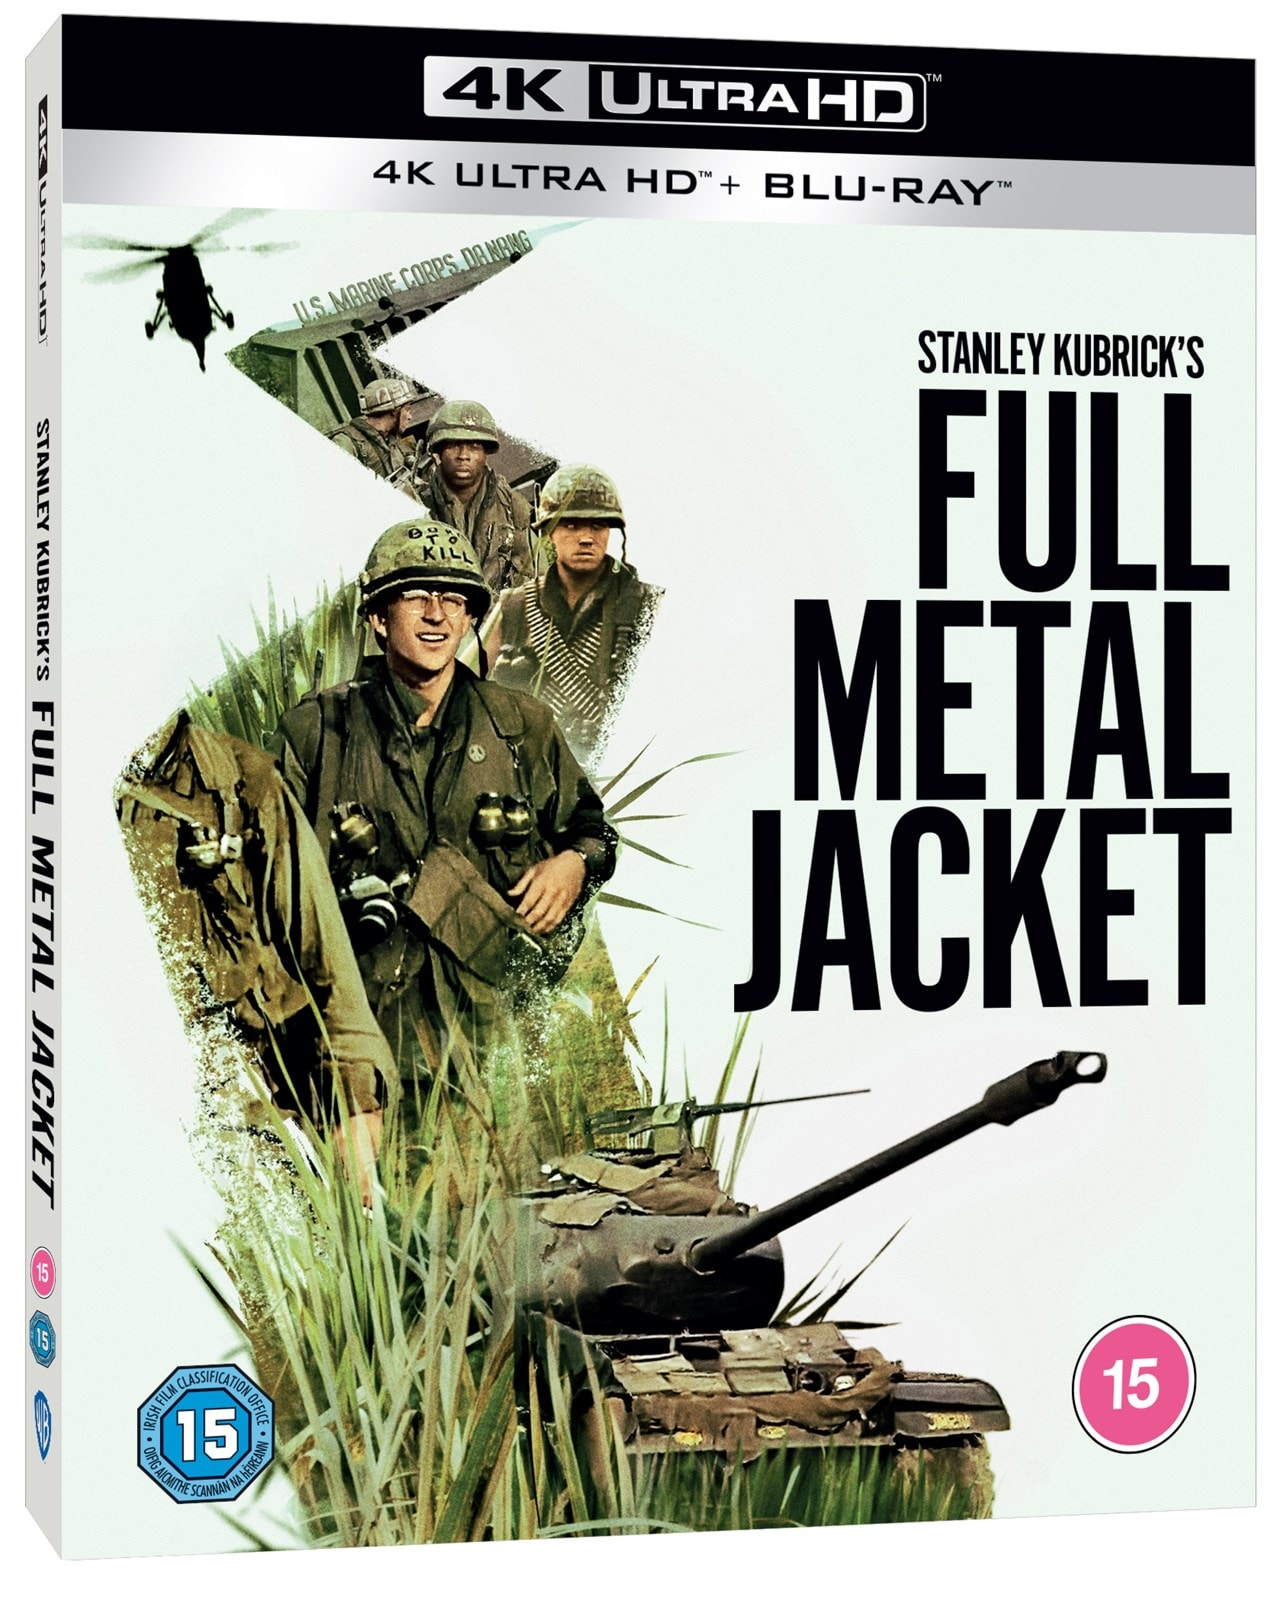 Full Metal Jacket - 2